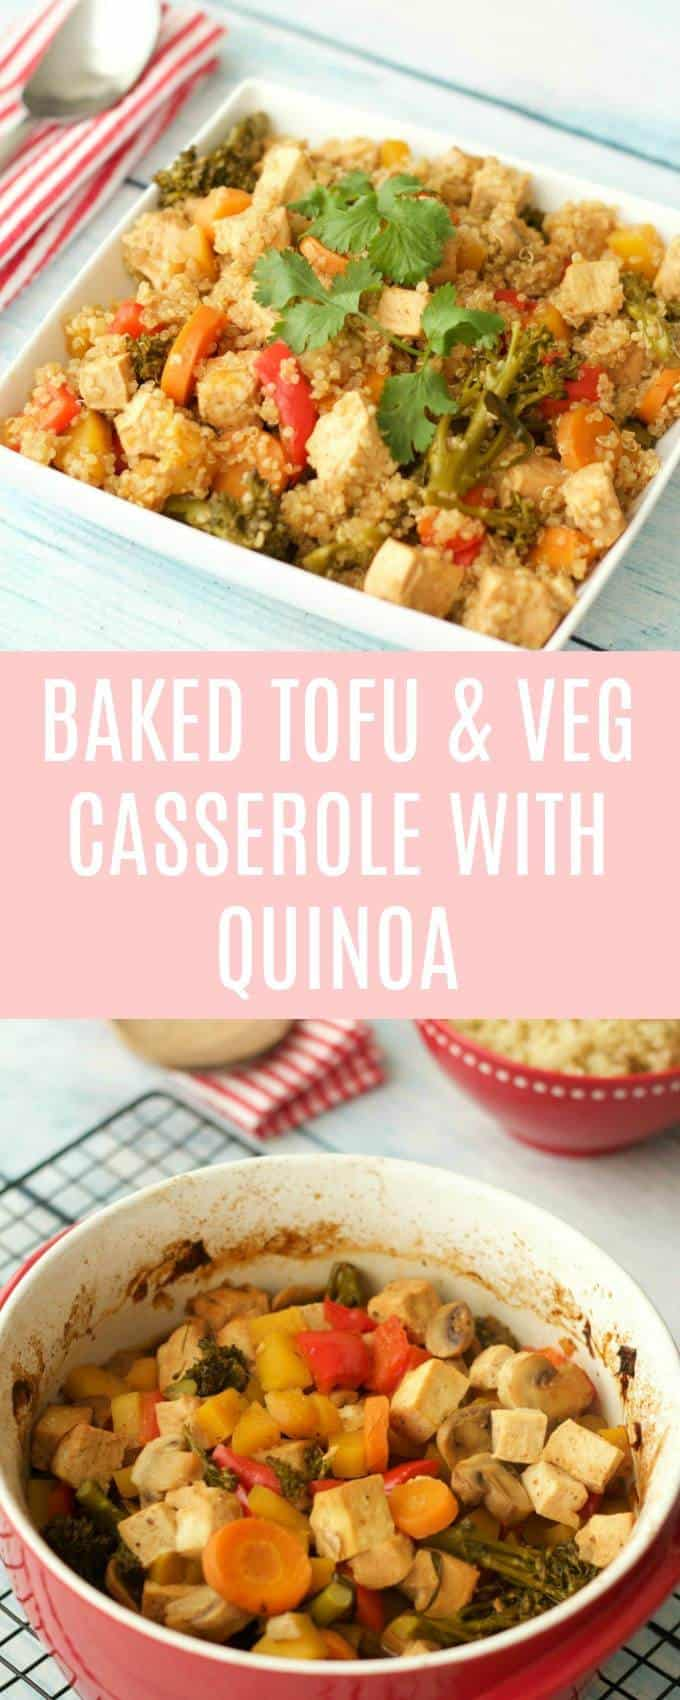 I love dinner meals that you can throw together pretty easily but still taste great.This baked tofu and vegetable casserole with quinoa is definitely that.Vegan | Vegan Dinner | Vegan Entree | Gluten Free | #vegan #vegandinner #glutenfree #entree | lovingitvegan.com